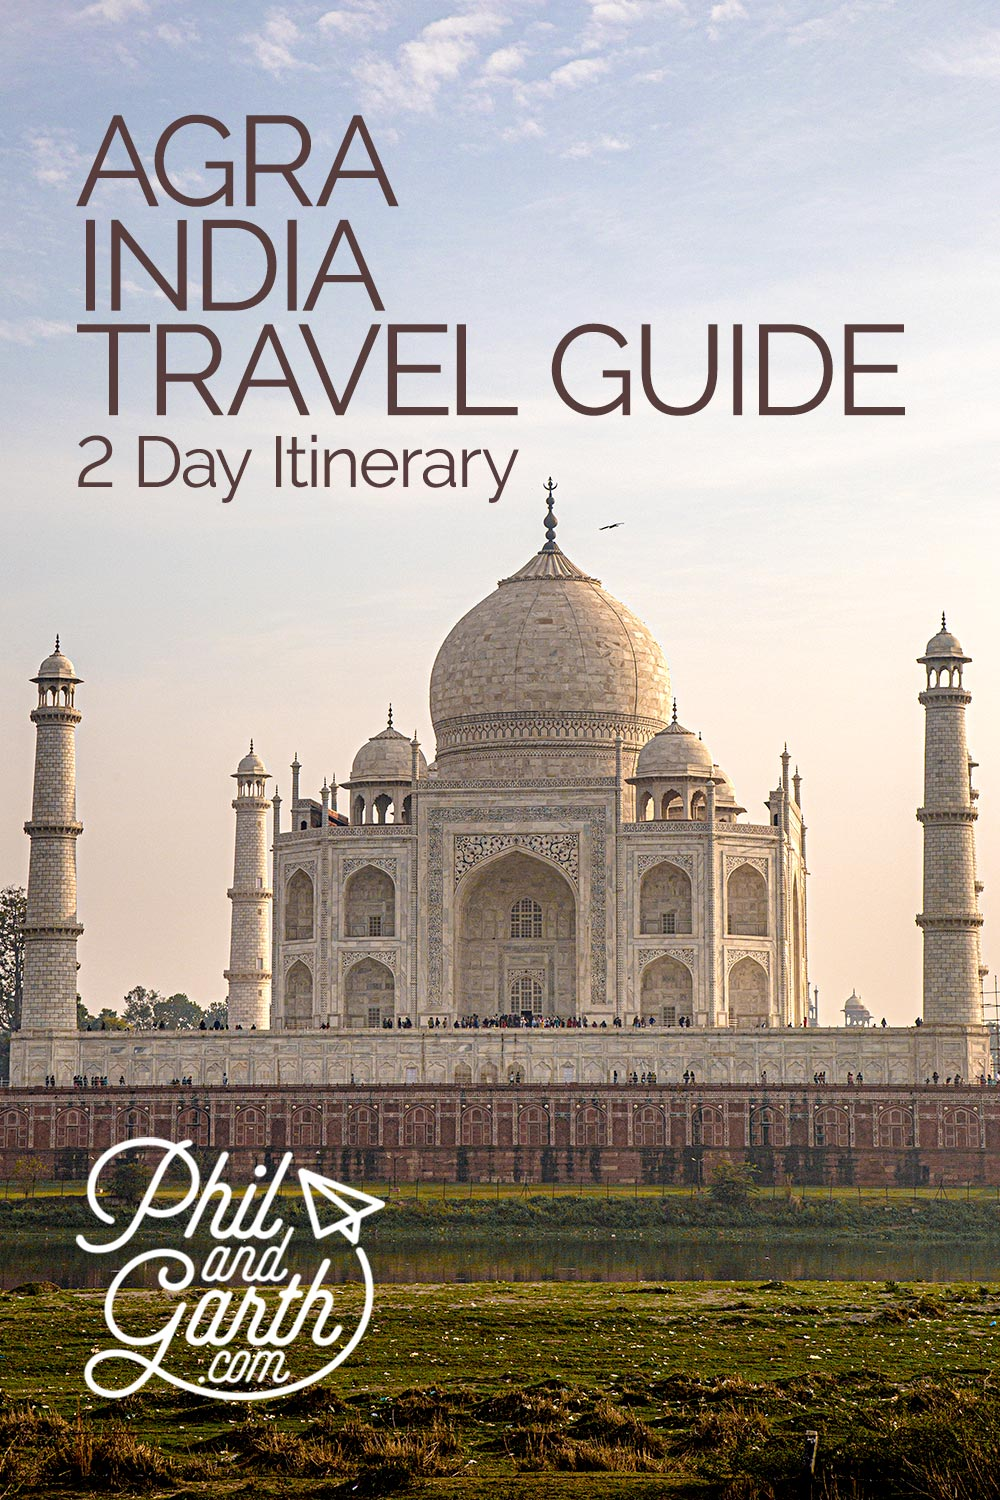 Agra 2 Day Travel Gude and Itinerary by Phil and Garth